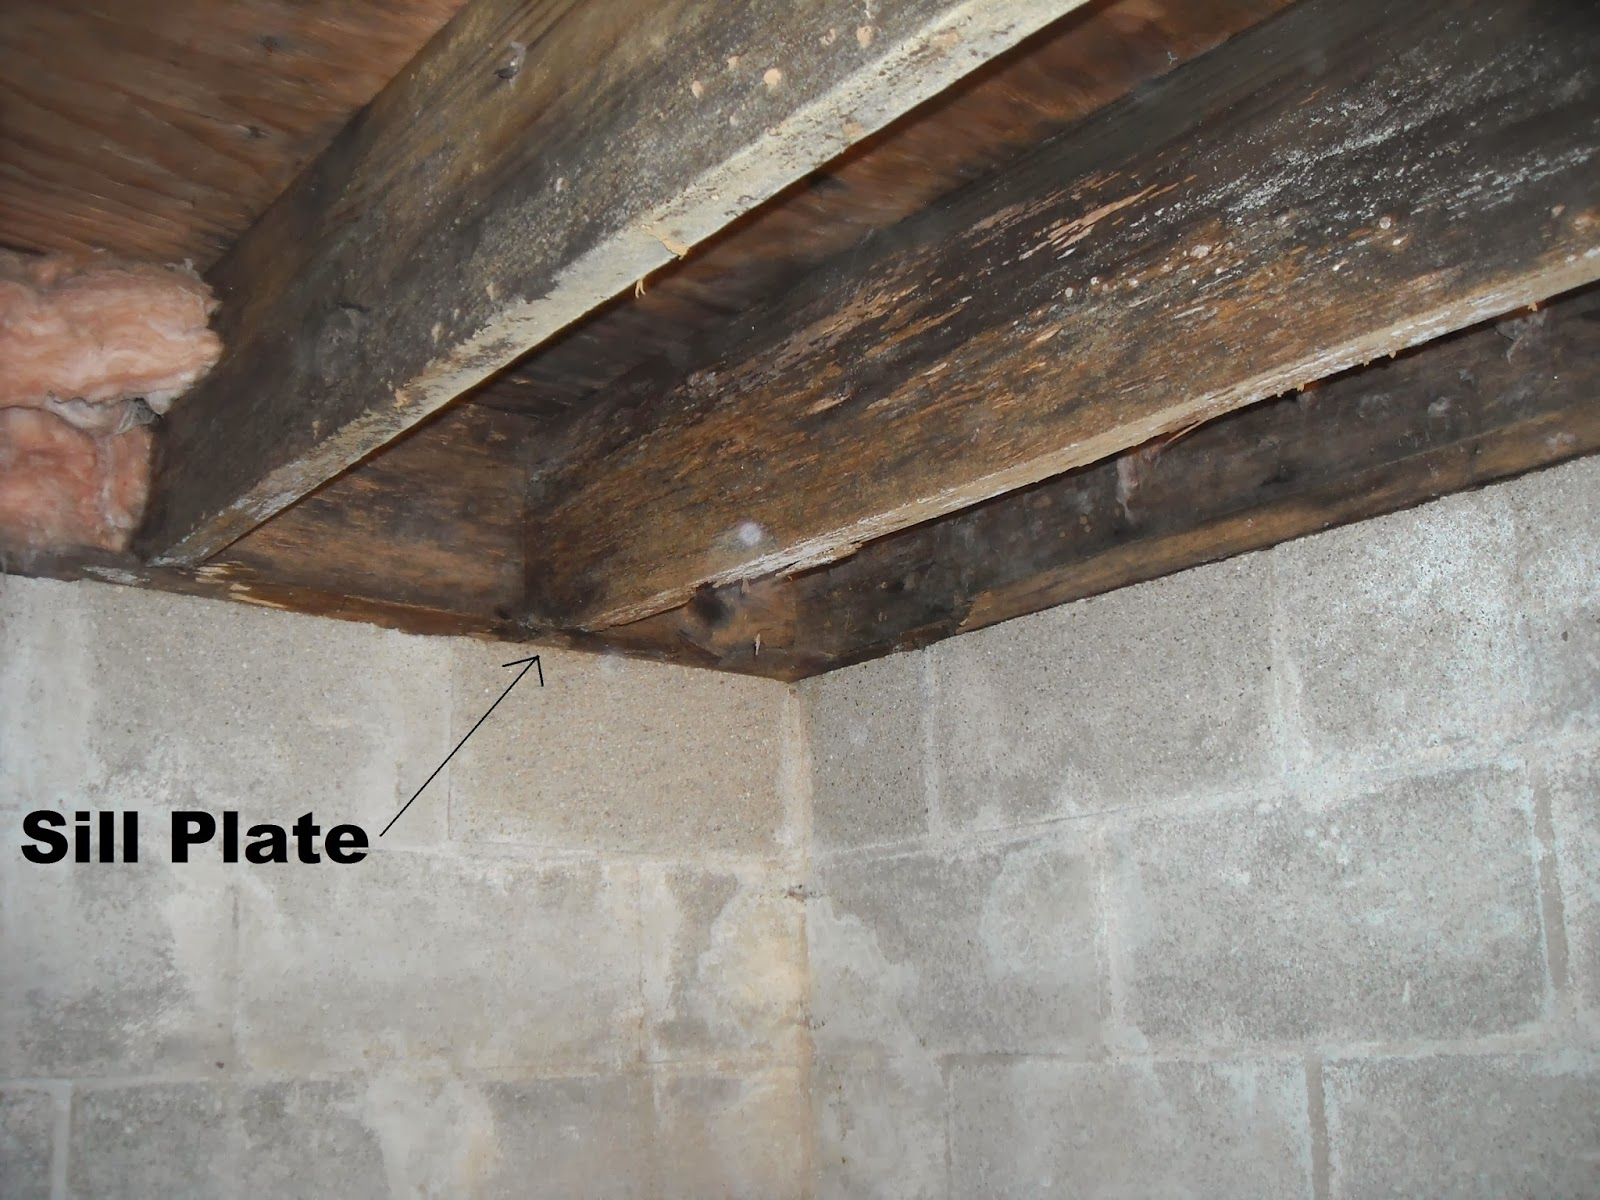 sill plate repair indiana